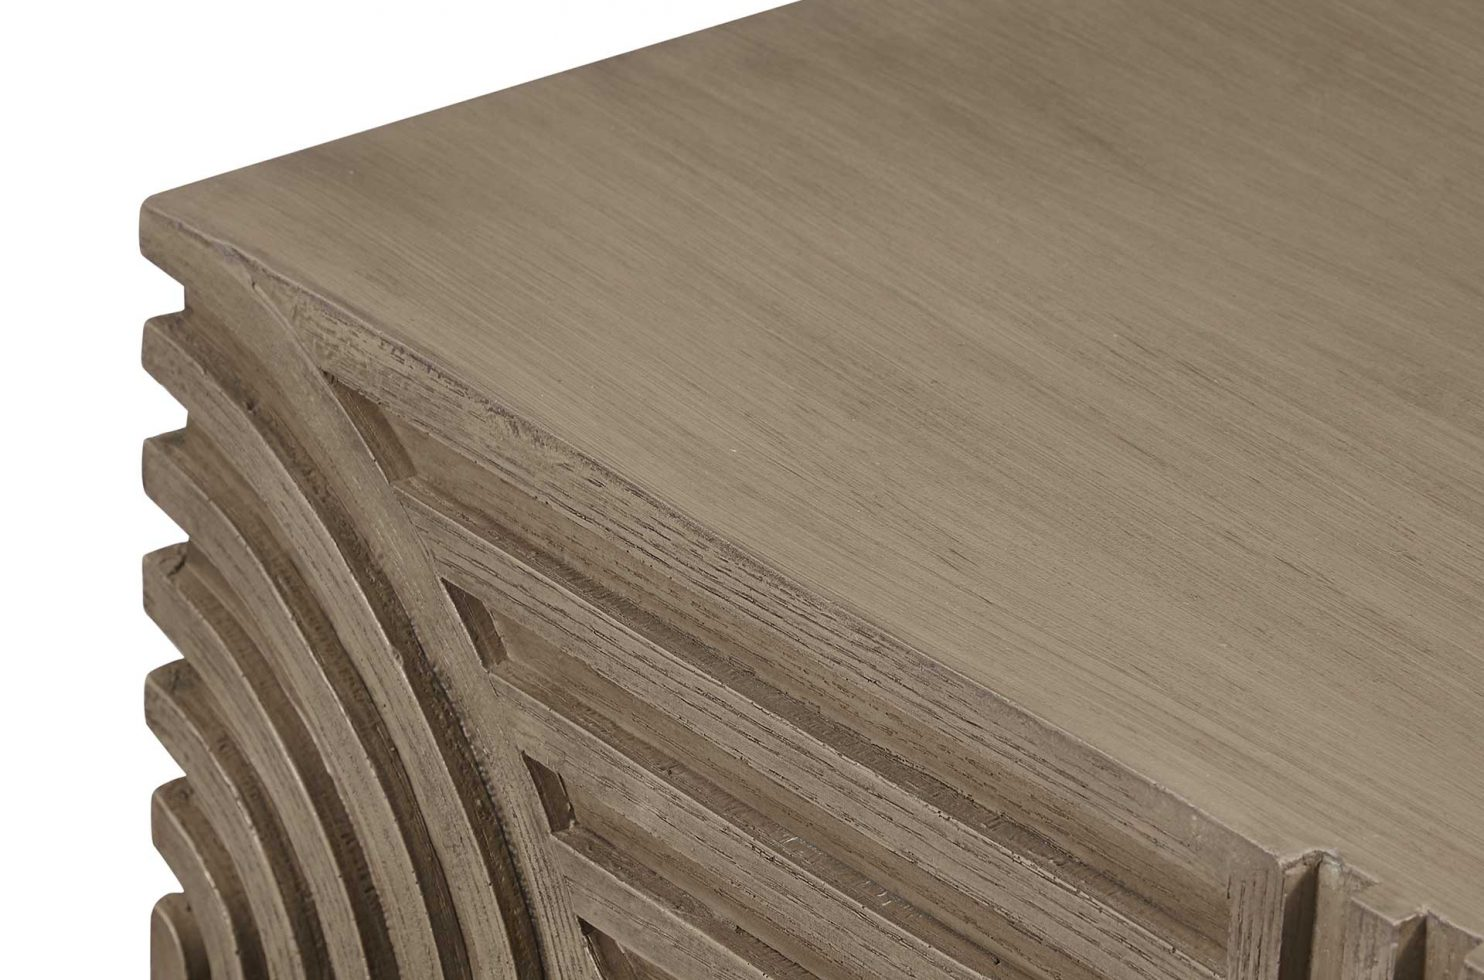 prov frp serenity energy textured square table S1568809116 dtl3 web